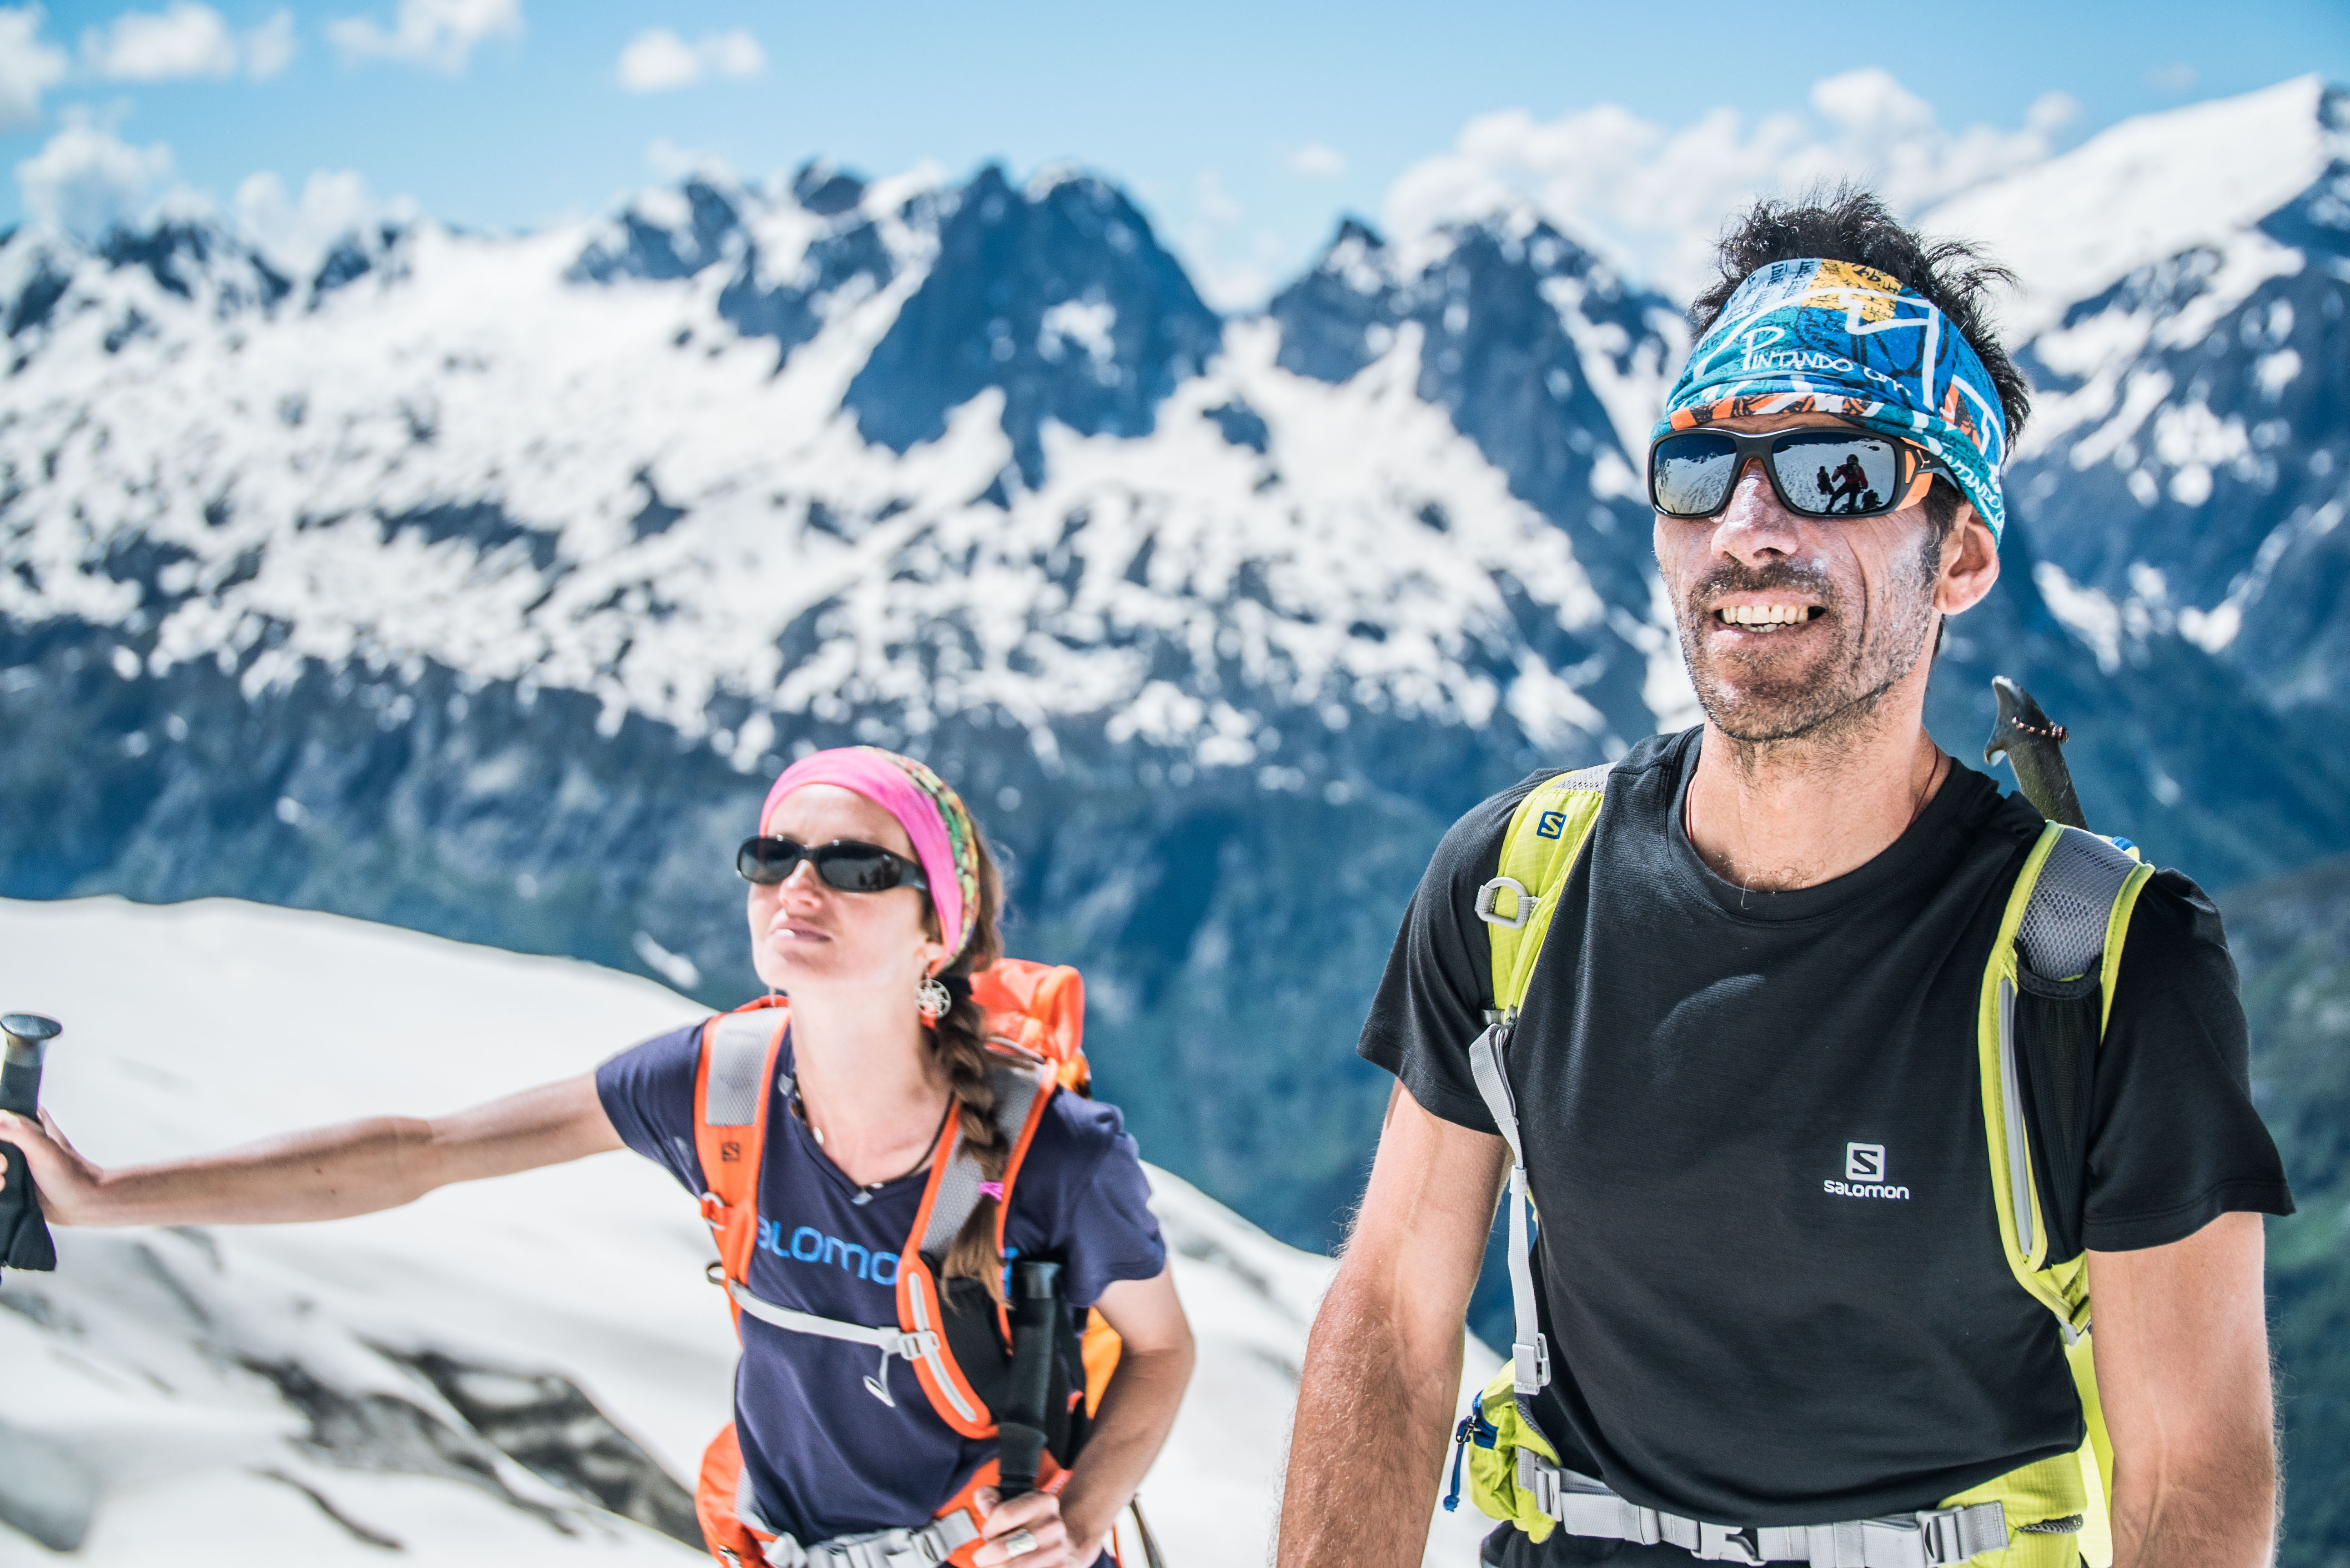 Alpine guide Jordi Tosas |  The French Alps